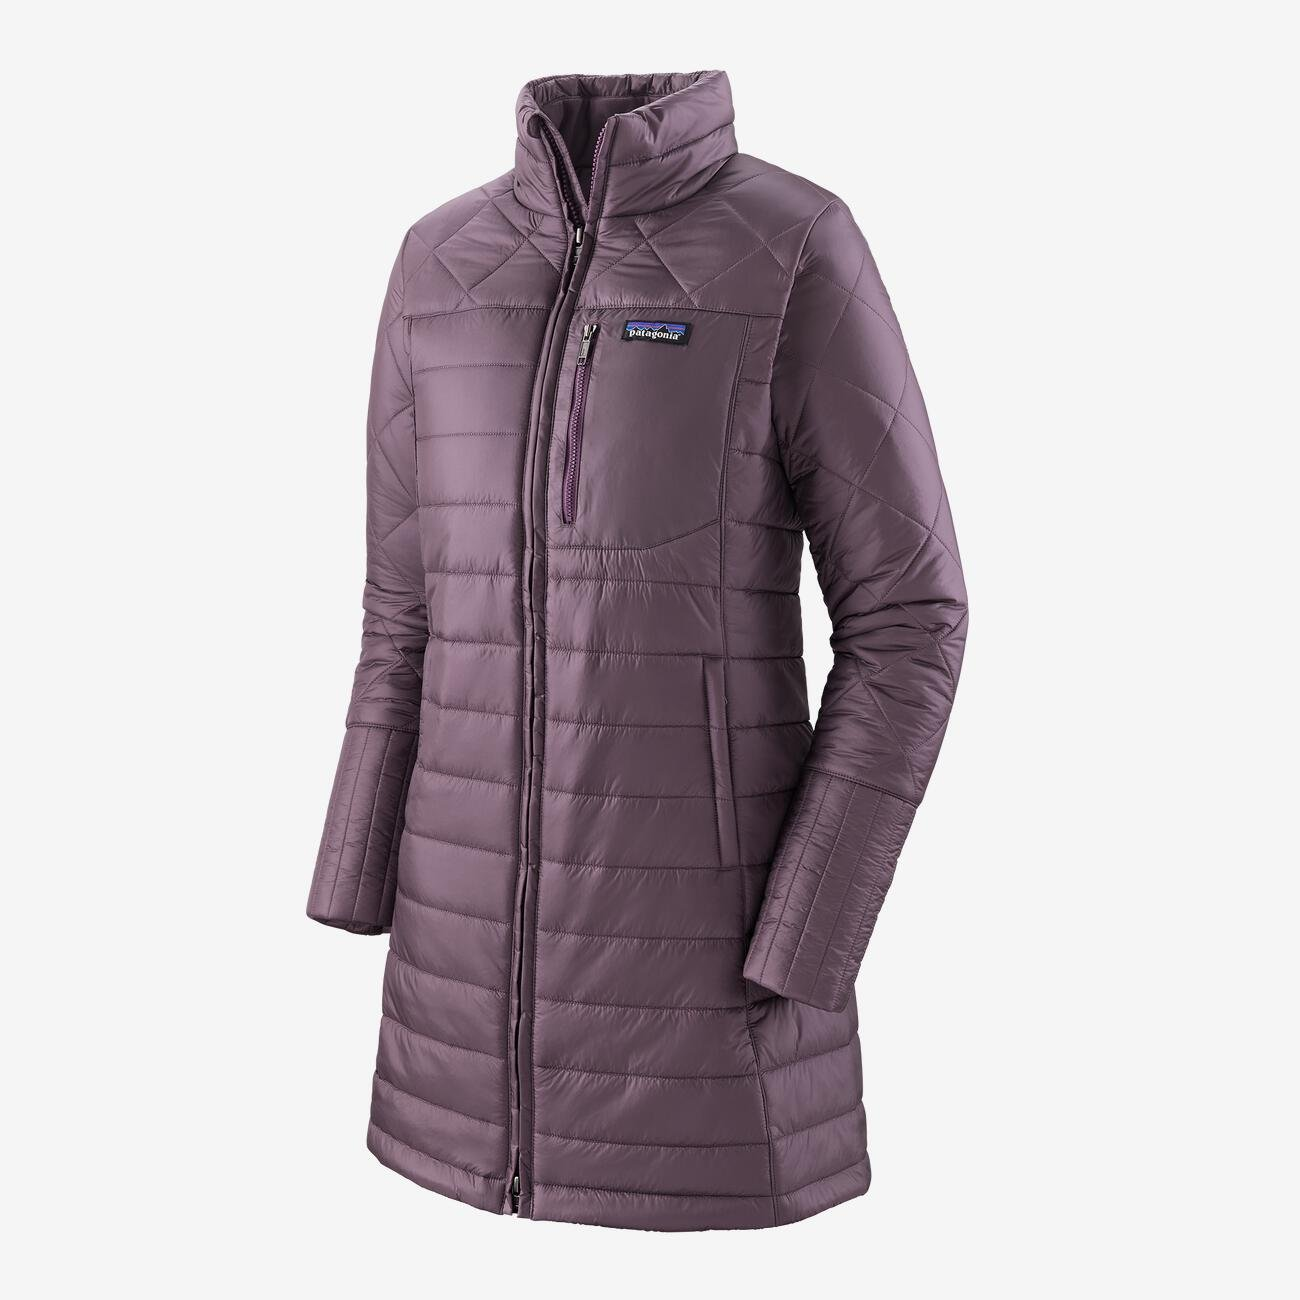 W's Patagonia Radalie Parka in Hysop Purple